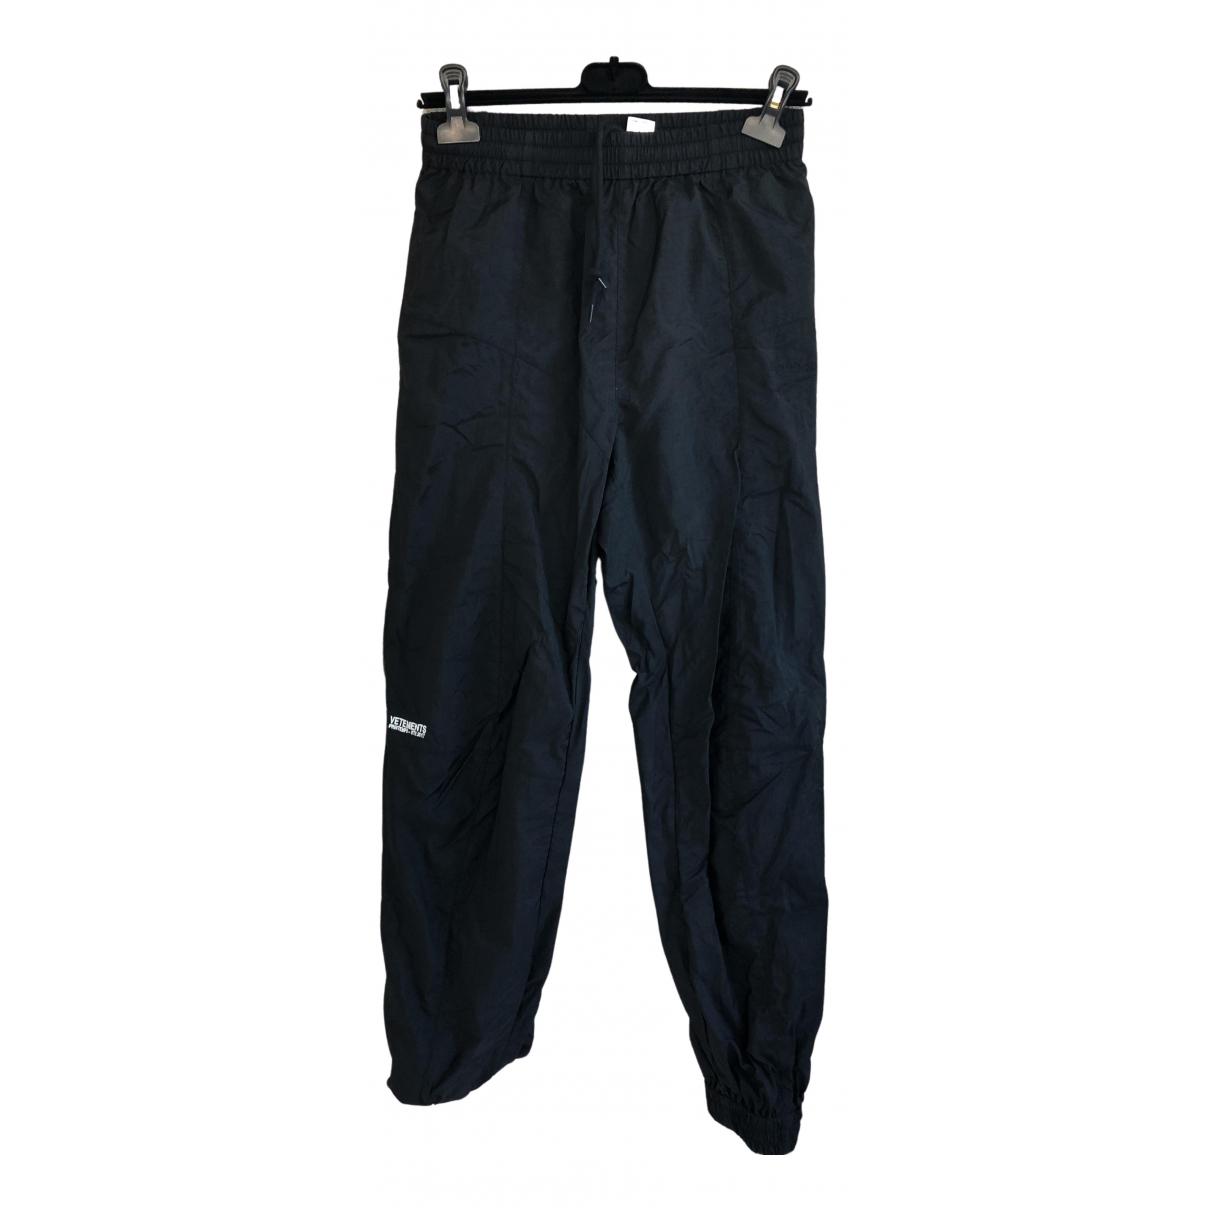 Vetements N Black Cotton Trousers for Women S International